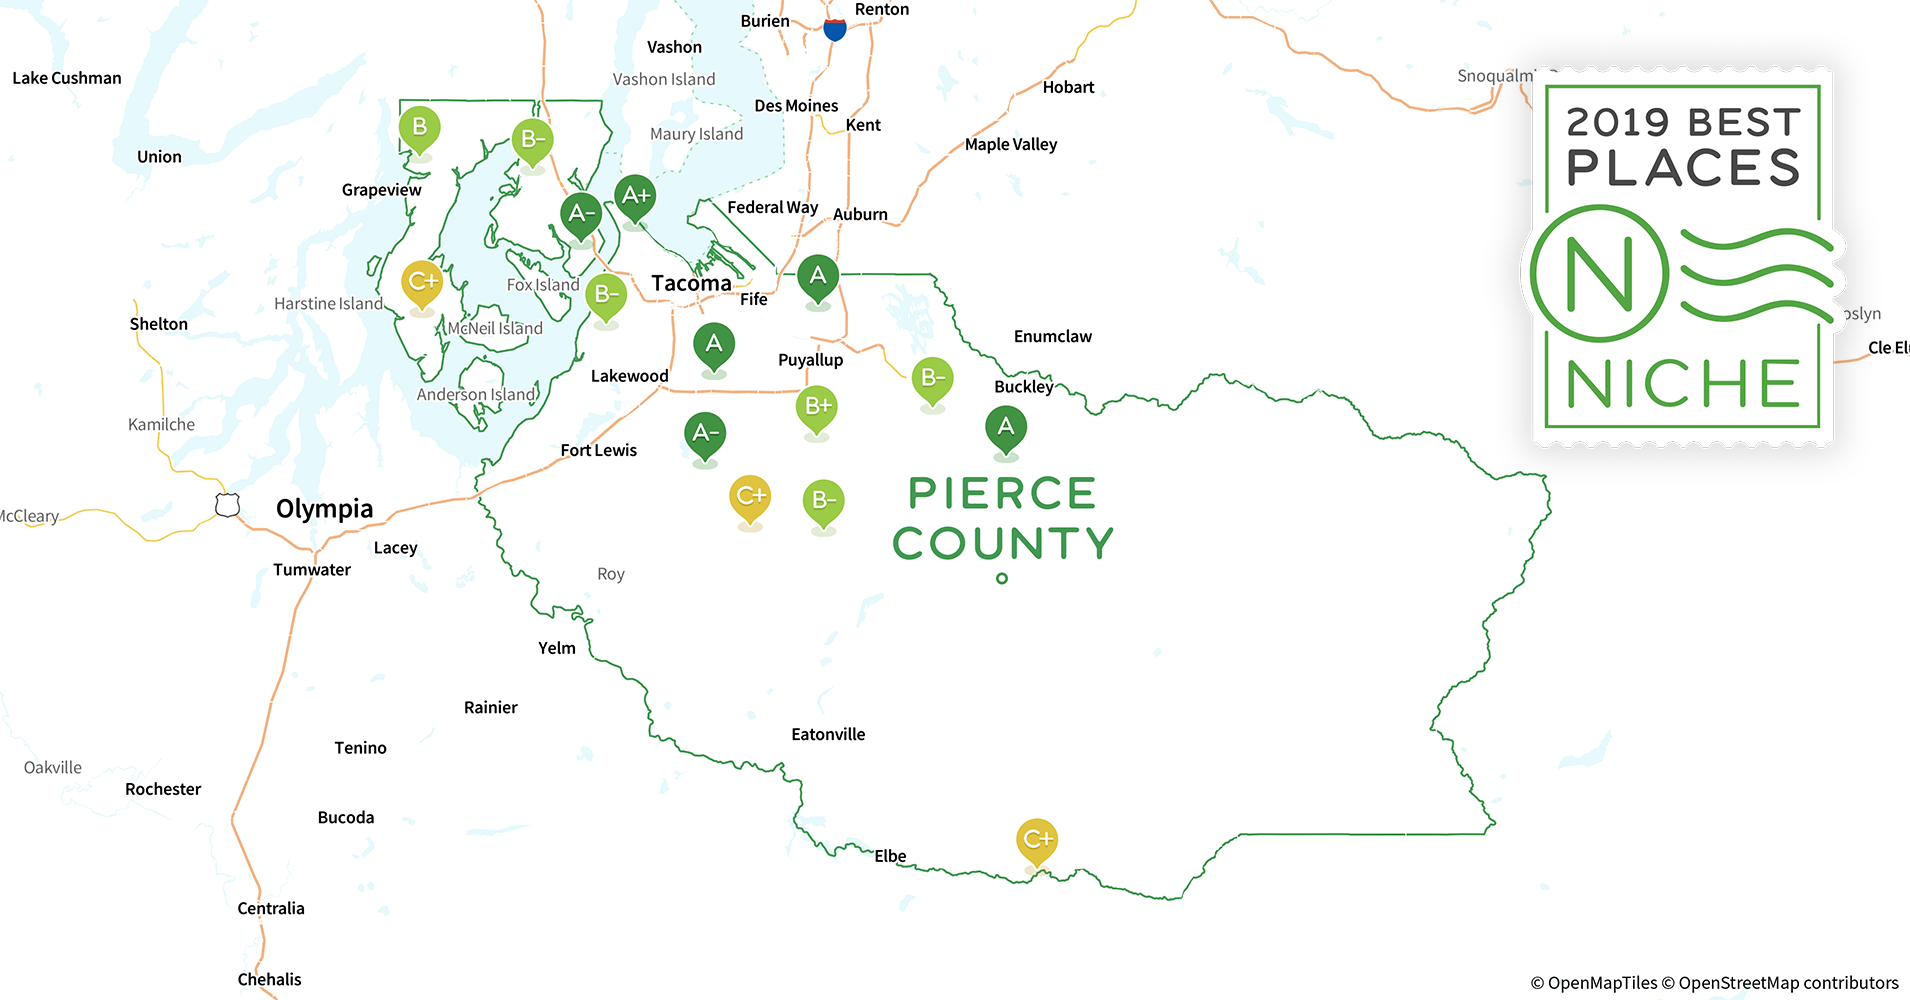 2019 Safe Places to Live in Pierce County, WA - Niche